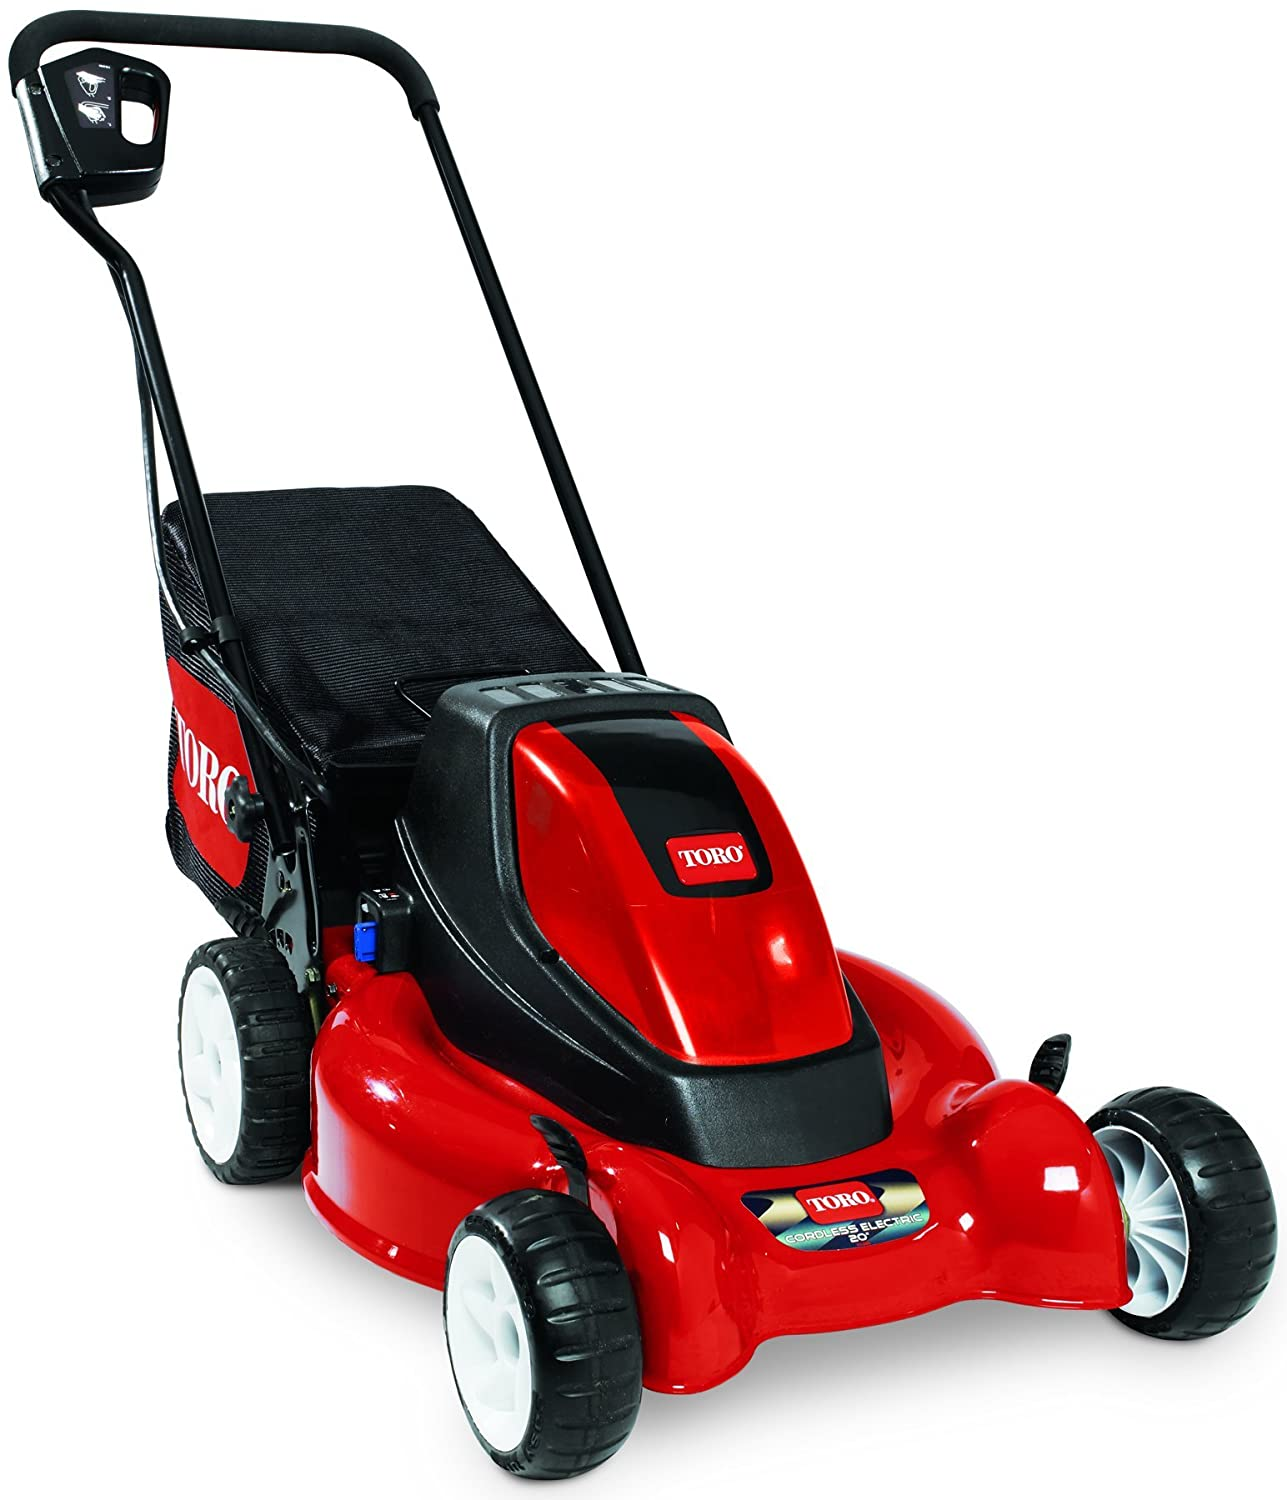 Amazon Toro e Cycler 20 Inch 36 Volt Cordless Electric